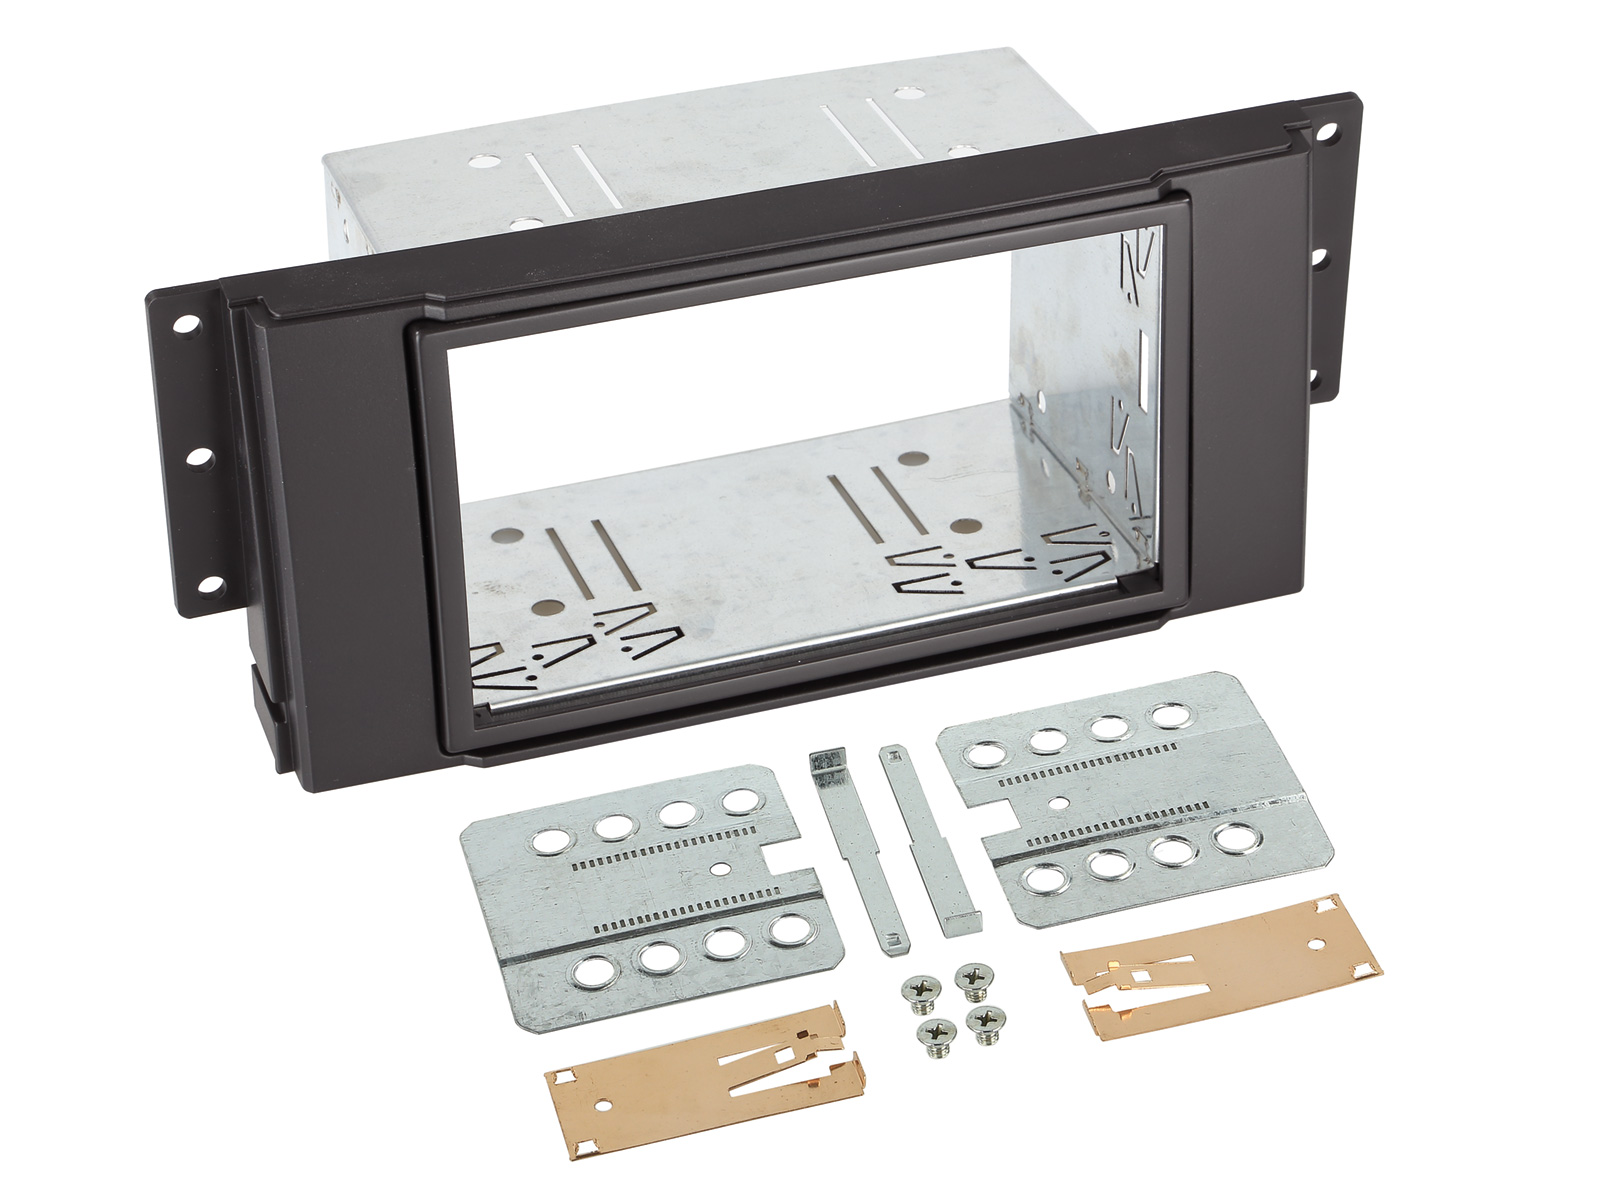 land rover freelander lf 06 12 2 din autoradio navi. Black Bedroom Furniture Sets. Home Design Ideas